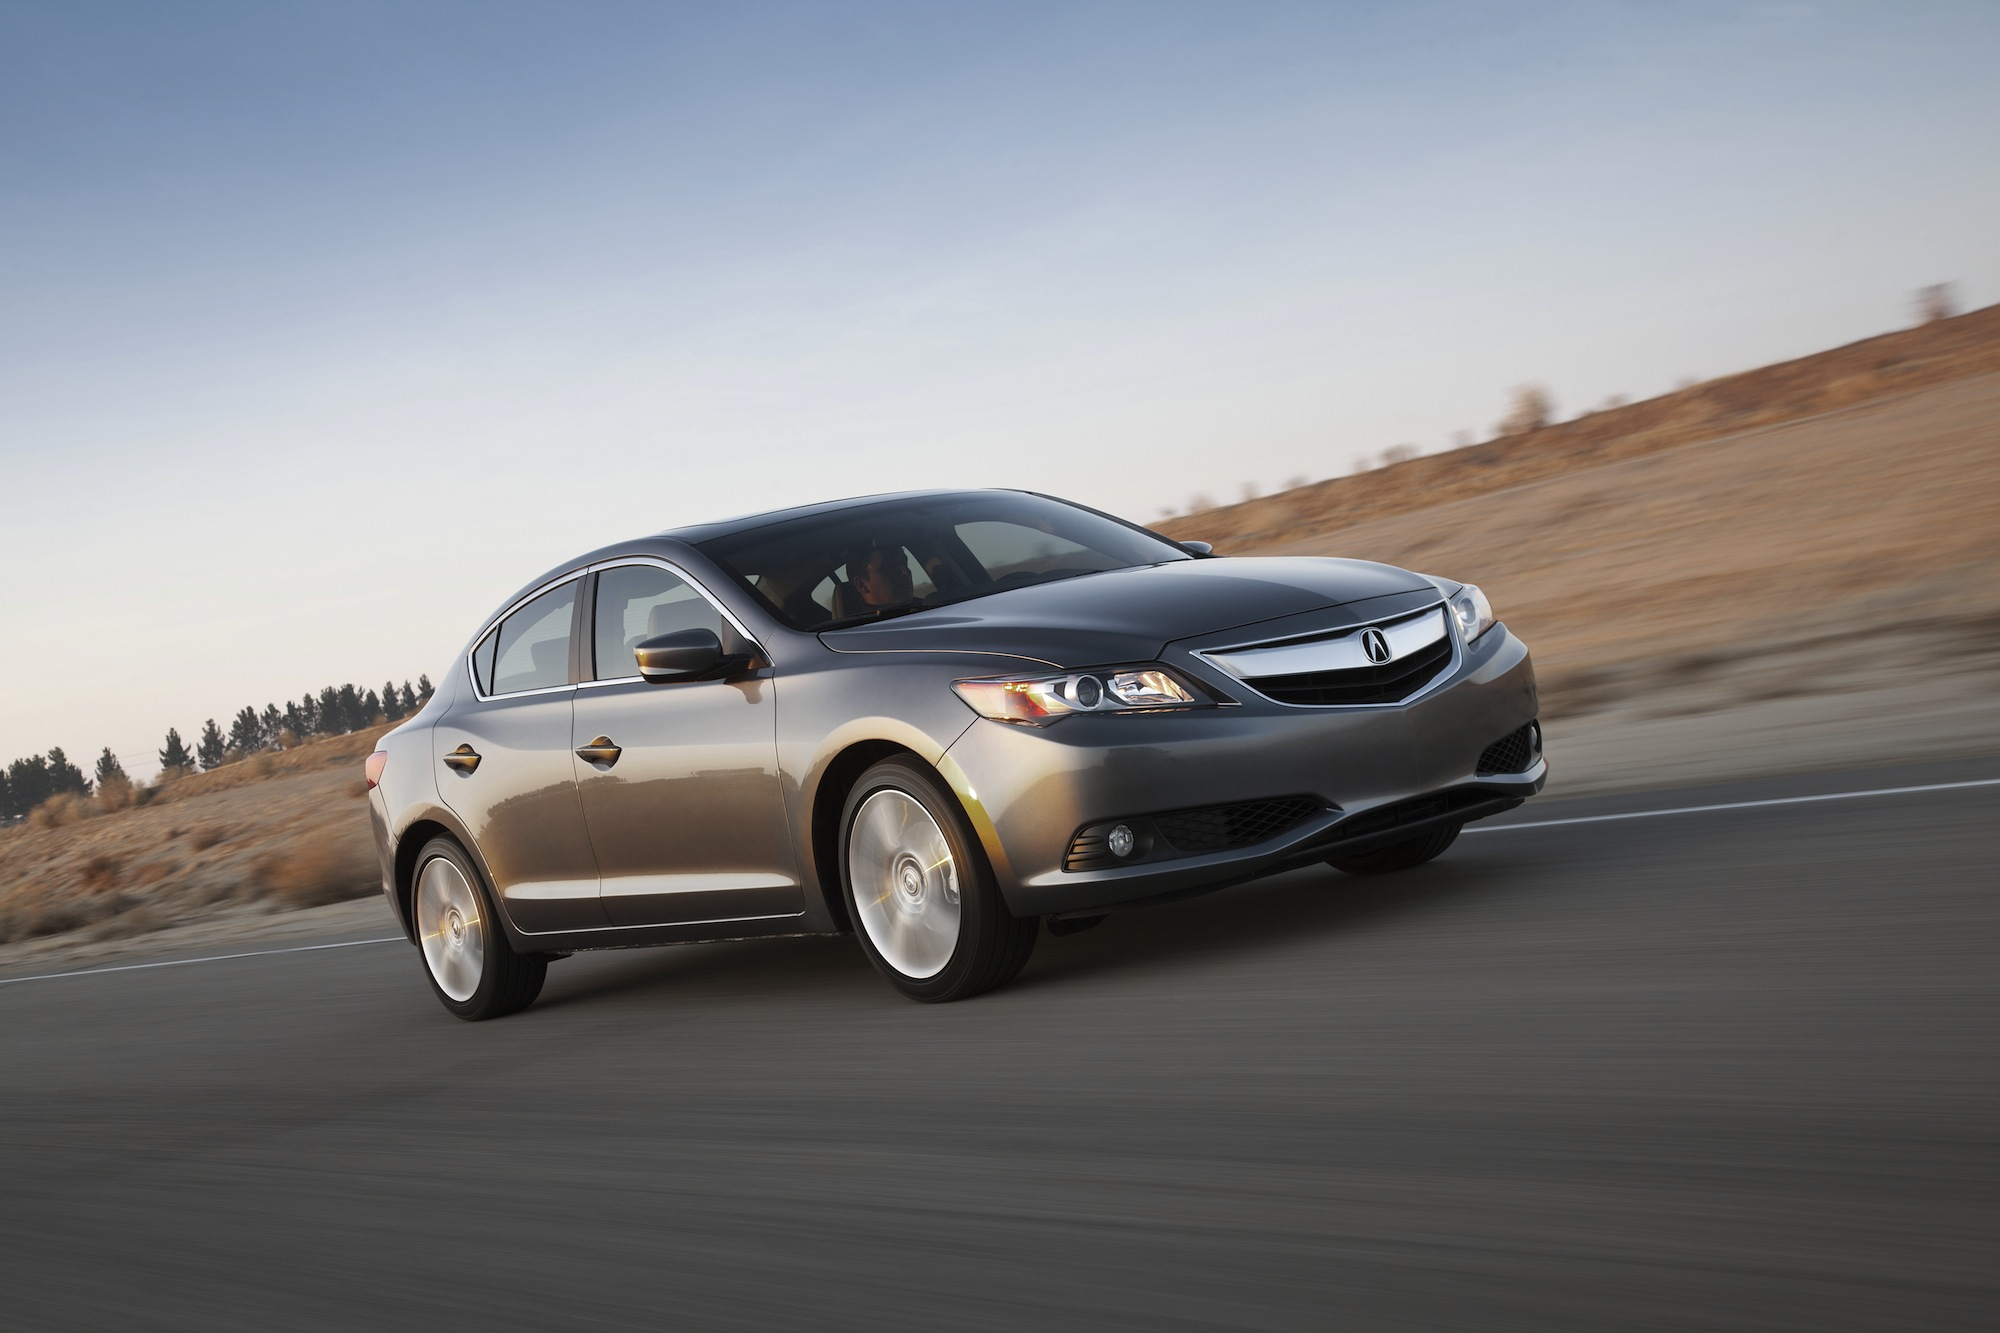 2013 Acura Ilx Review Ratings Specs Prices And Photos The Car Connection